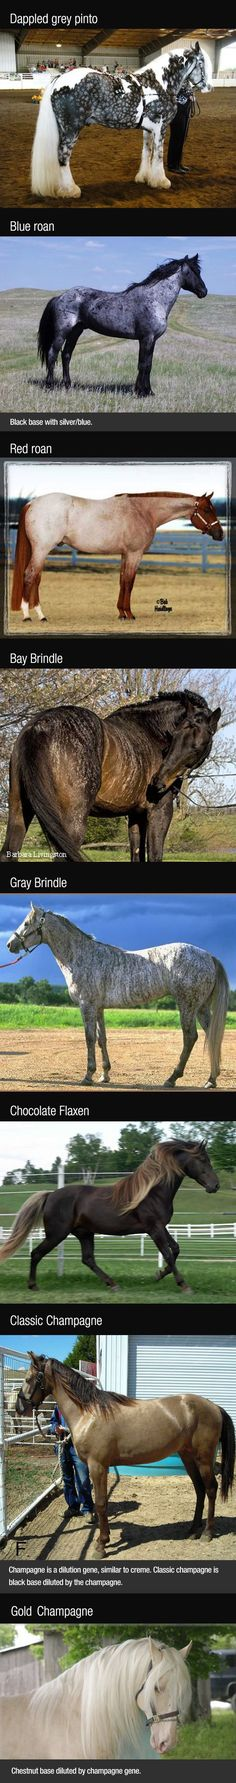 The sad thing is the explanation on most of these and the genetics behind them is WRONG. People's stupidity amazes me. Still pretty horses though.